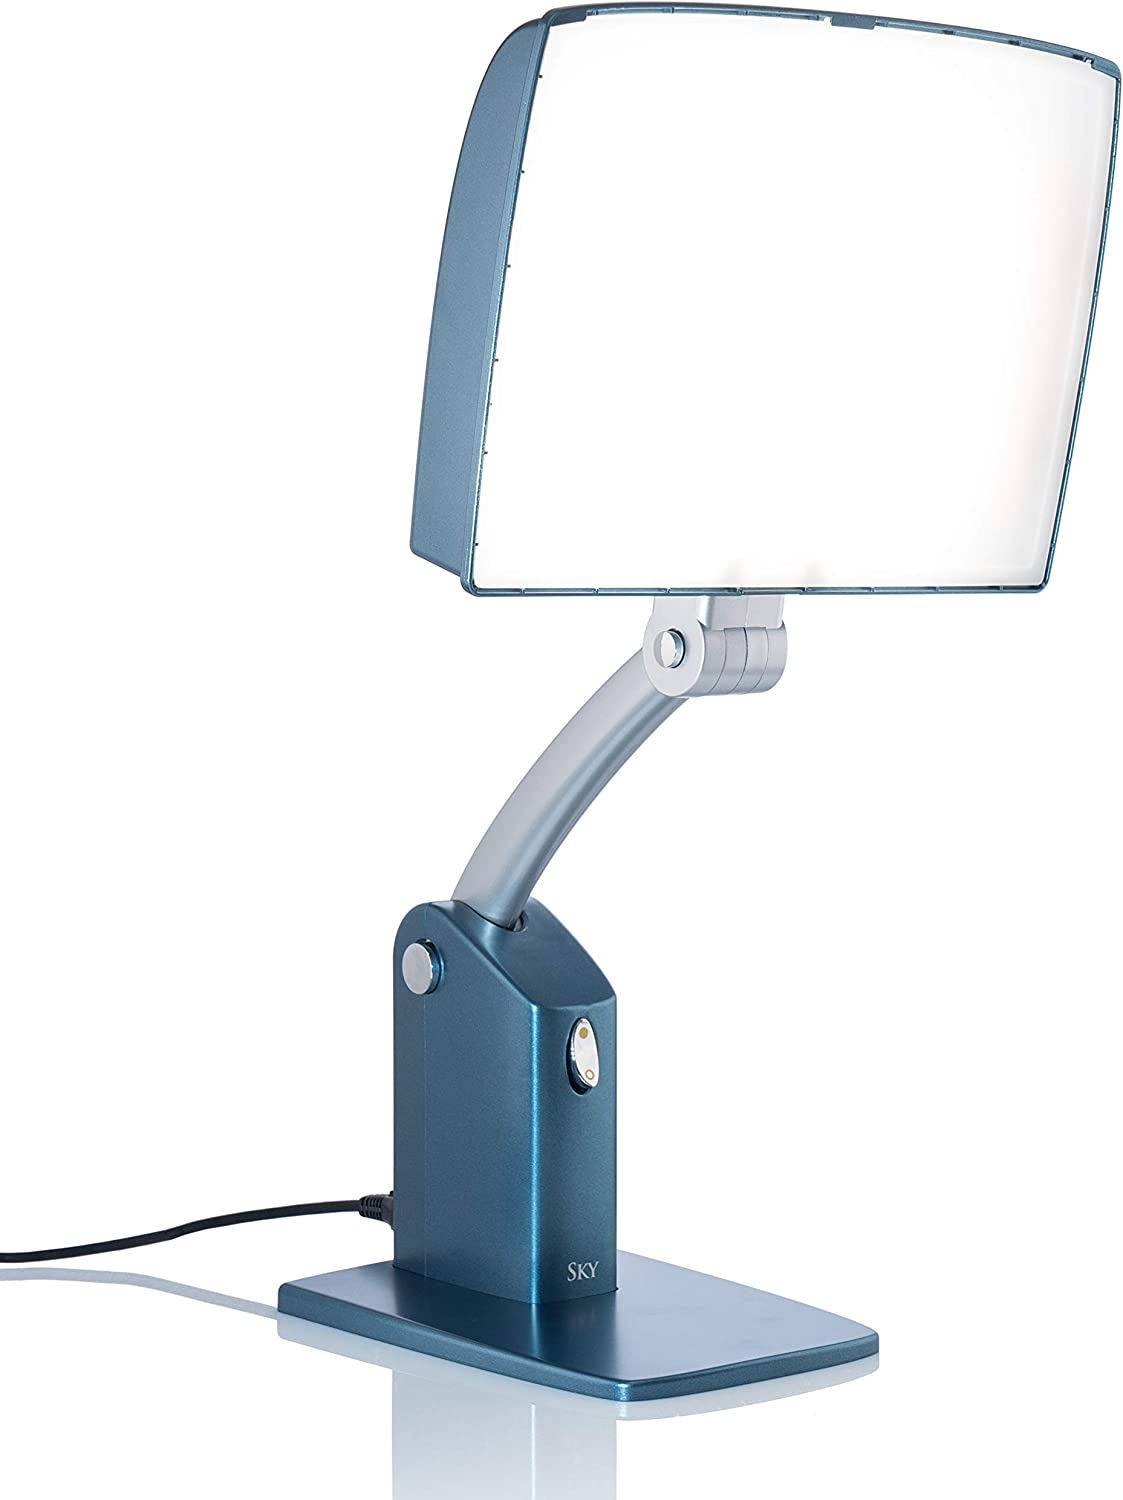 Carex Day-Light Sky Bright Light Therapy Lamp – 10,000 LUX – Sun Lamp To Combat Winter Blues and To Increase Your Energy